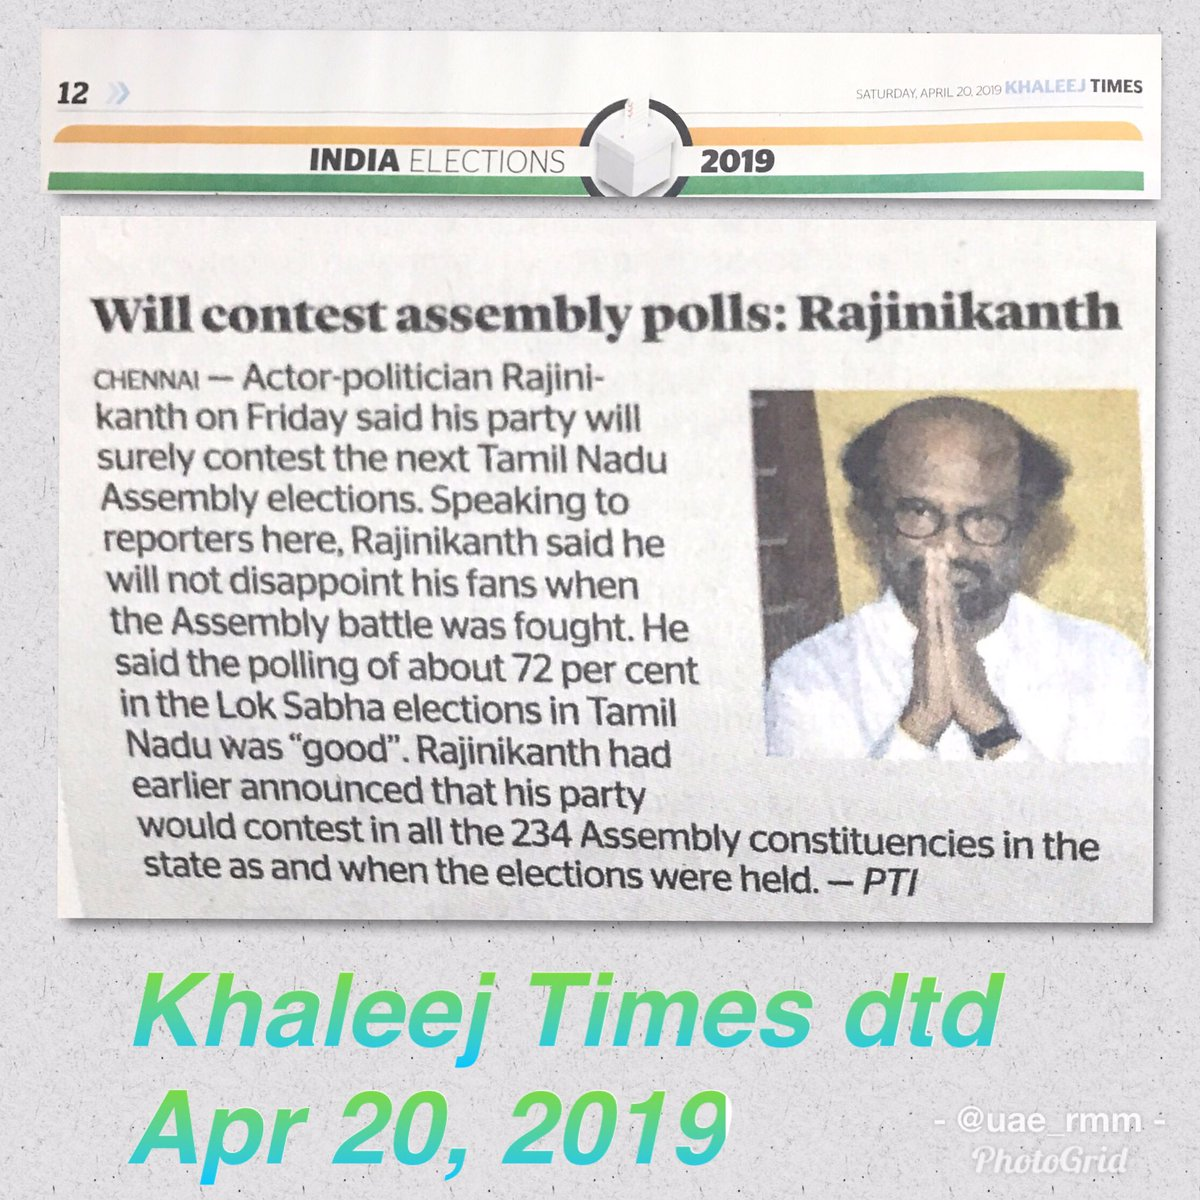 #Thalaivar political announcement about being ready to face TN assembly elections anytime has sent ripples across the state. Middle East newspaper @khaleejtimes has covered this news as part of India elections update. <br>http://pic.twitter.com/3O2S6SqGZA